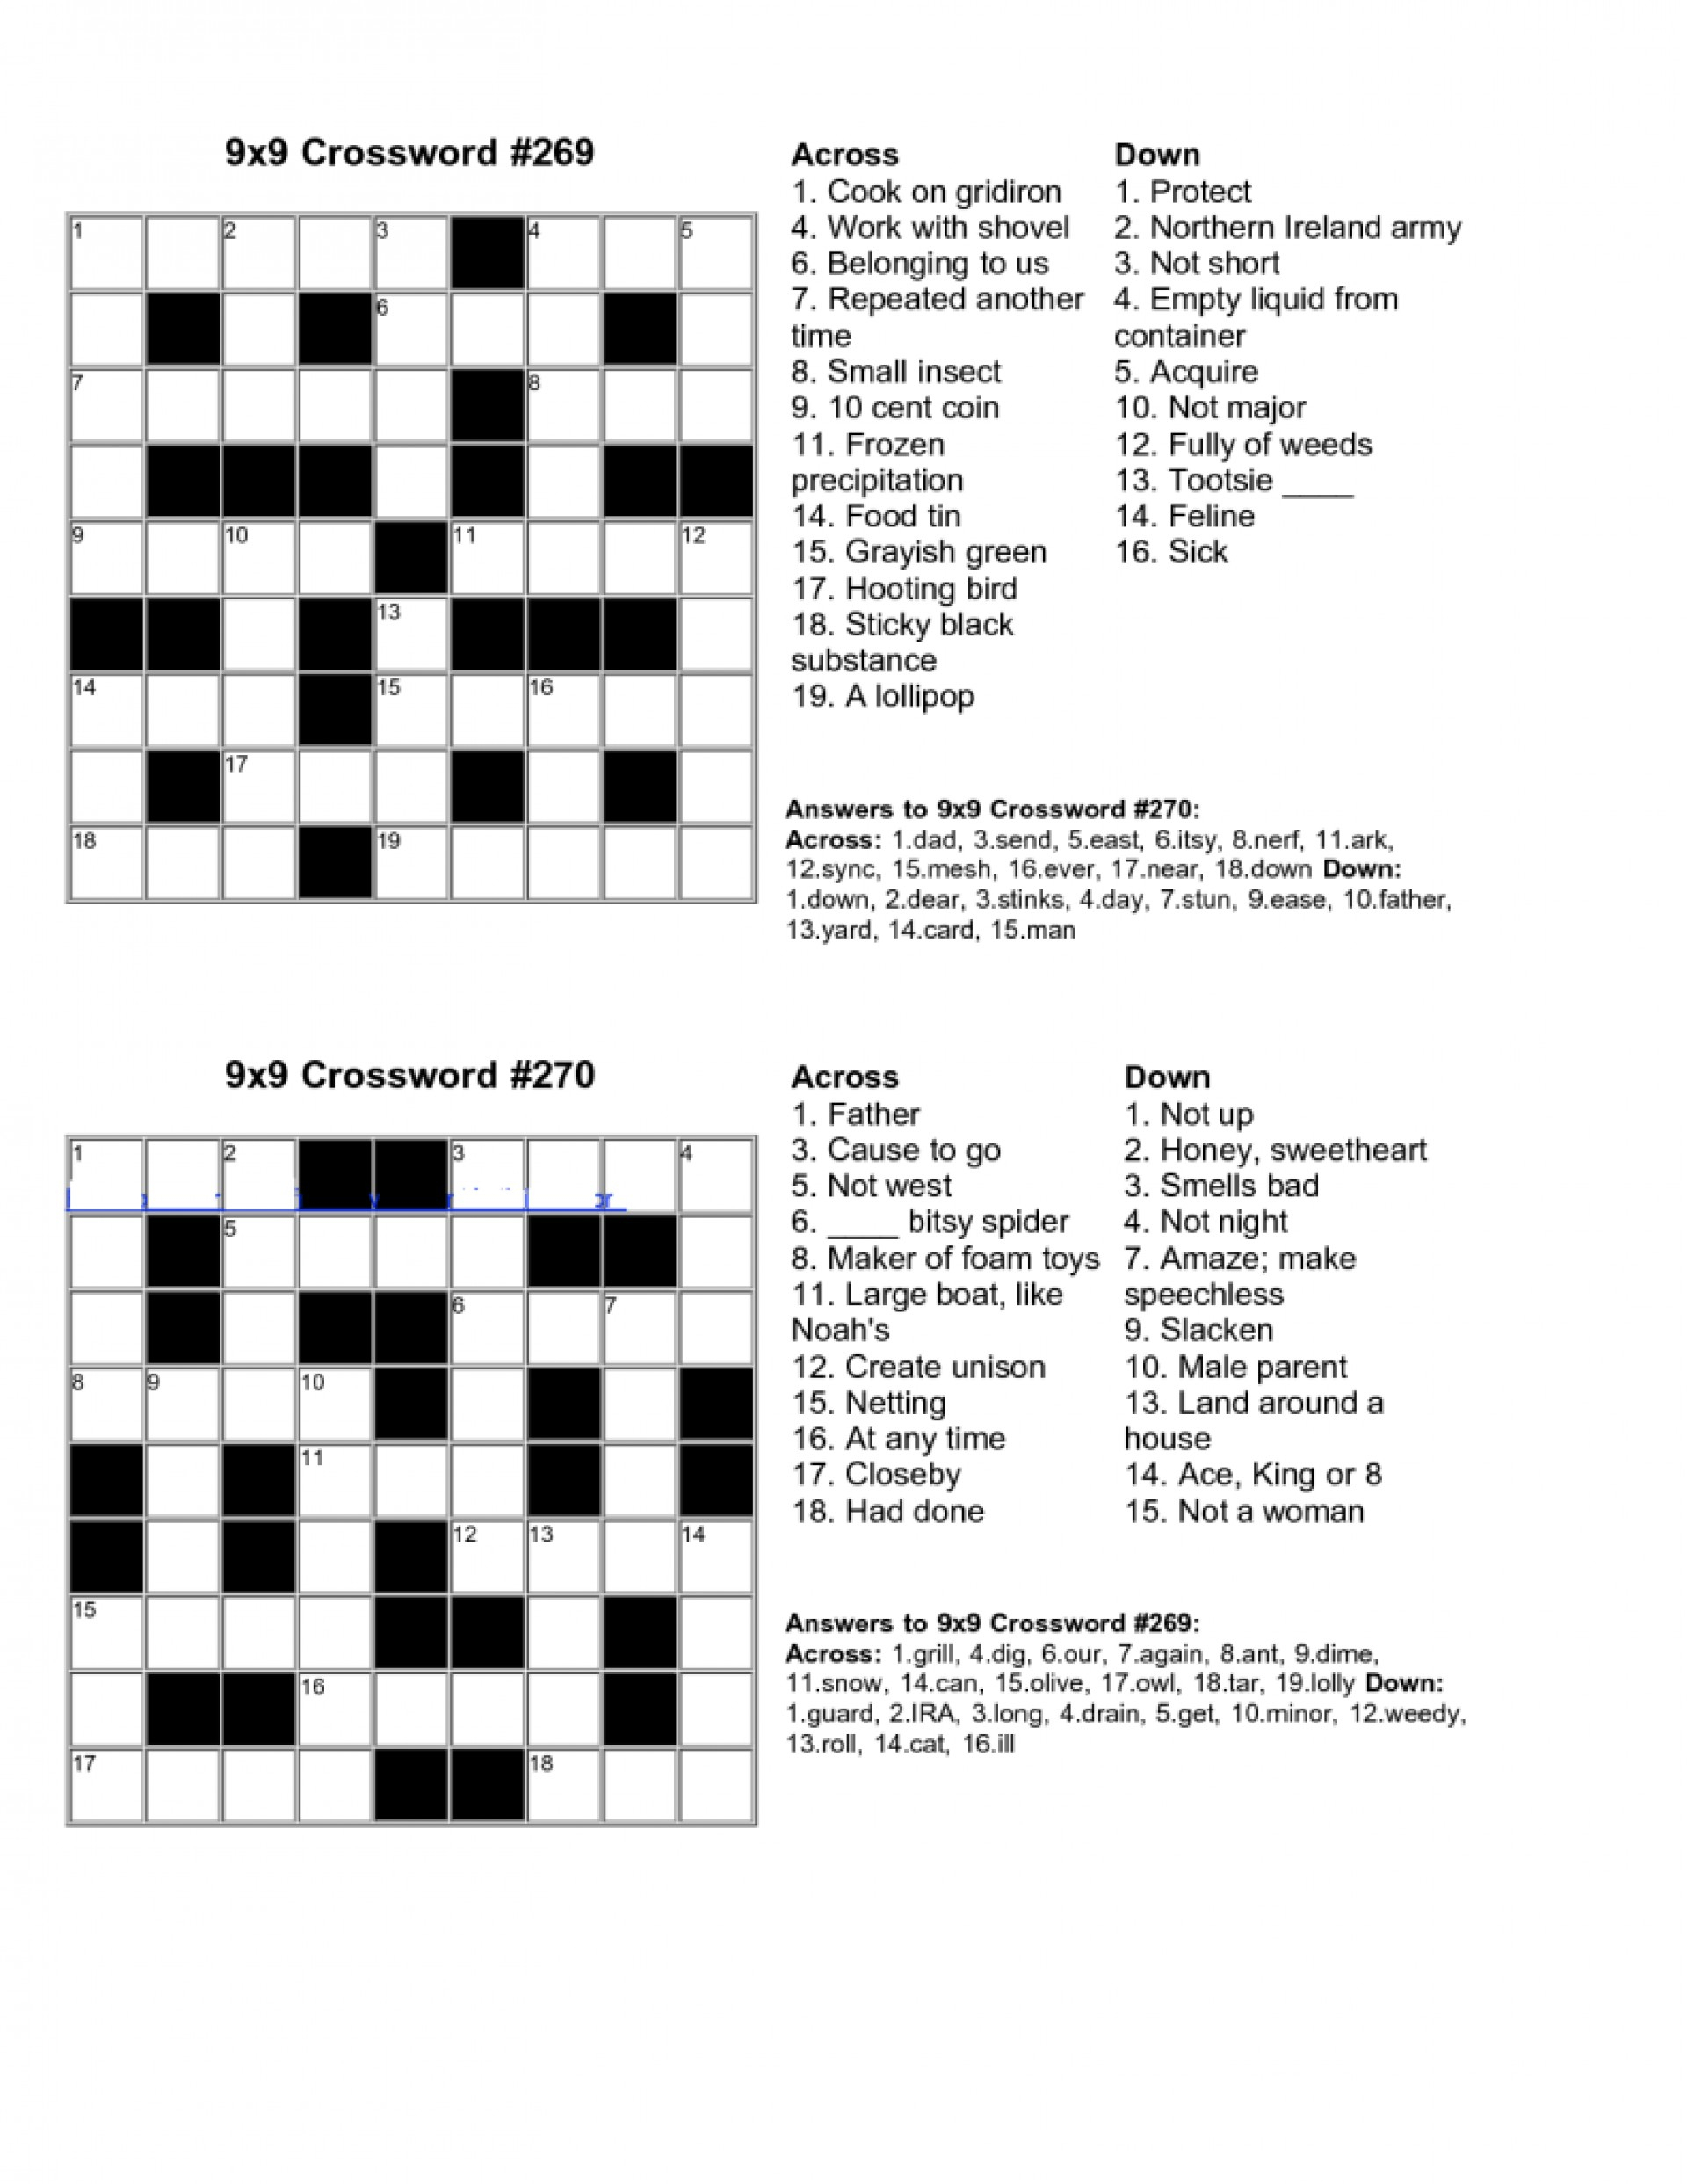 Free Crossword Puzzle Maker Printable - Stepindance.fr - Make Your Own Crossword Puzzle Free Printable